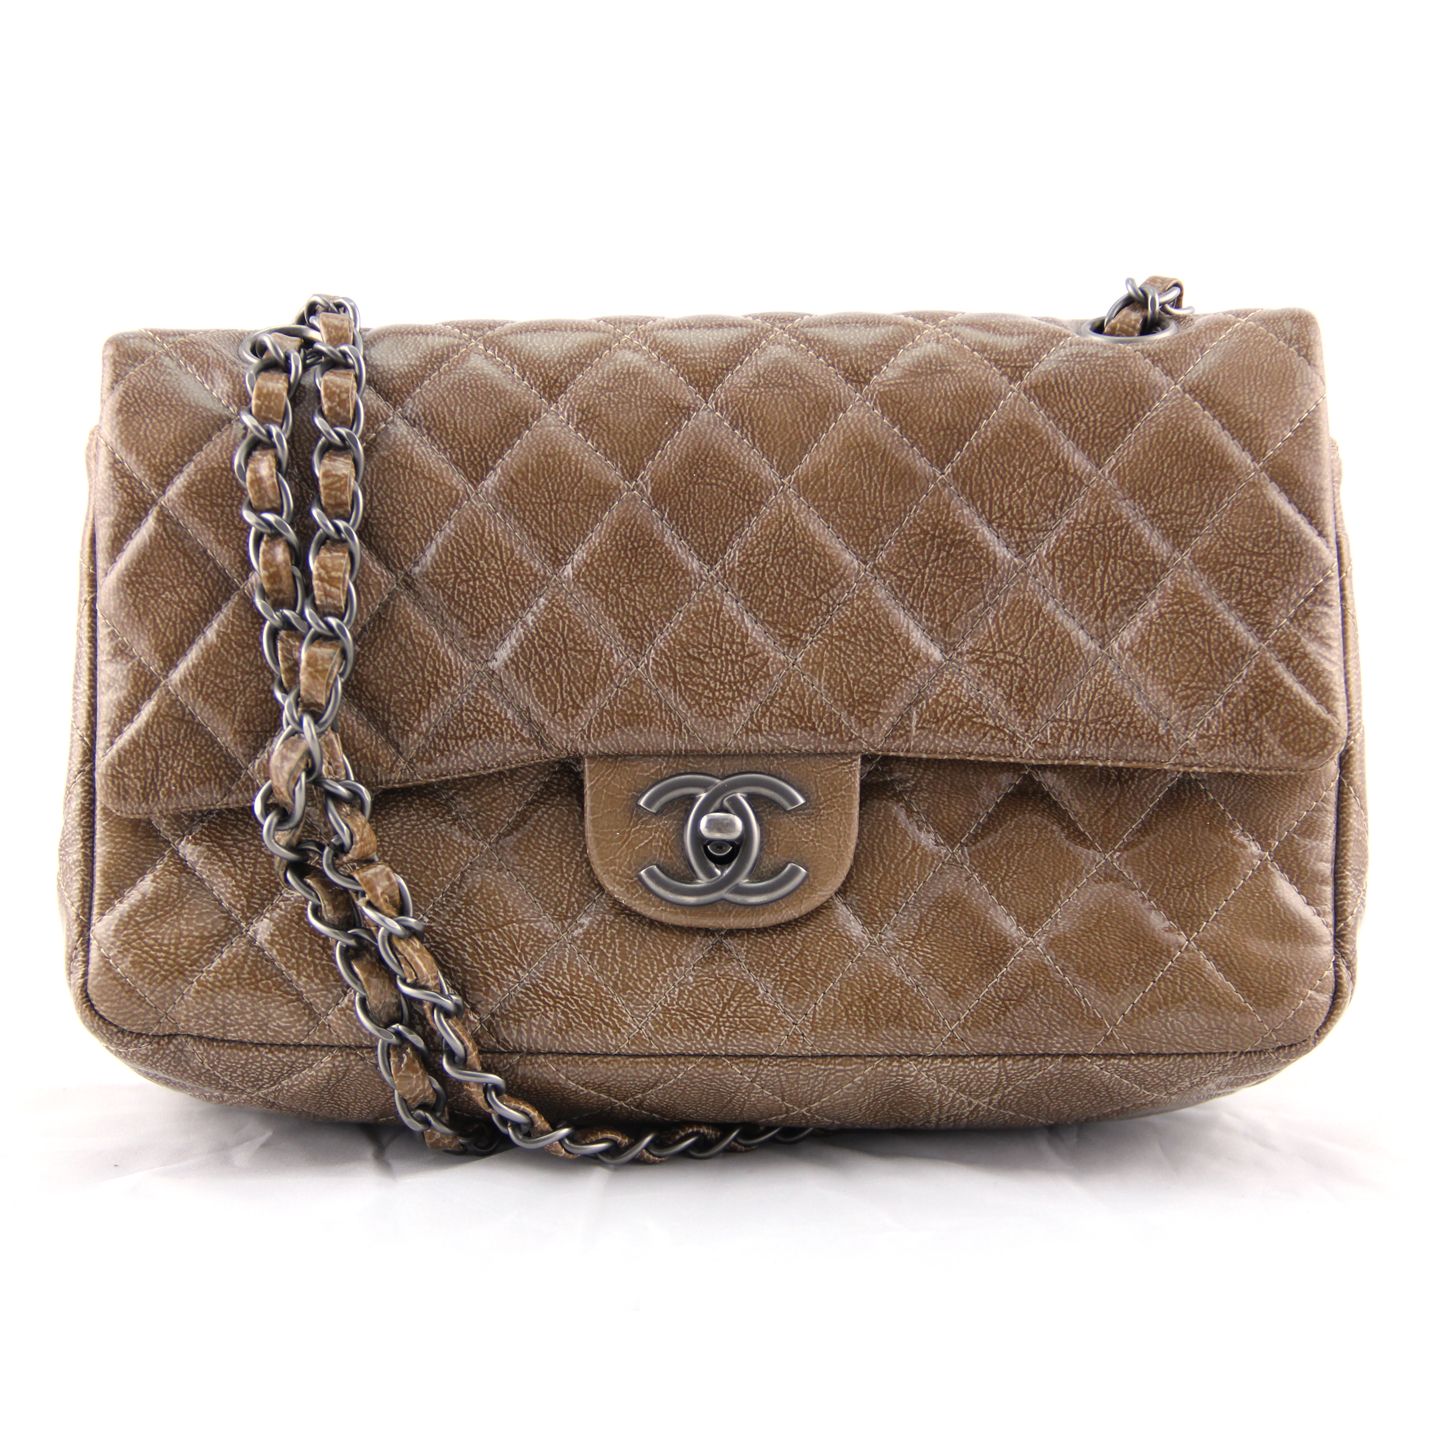 ee2579928f1 Chanel Patent Leather Quilted Classic Medium Flap Bag - DreamLux Studio